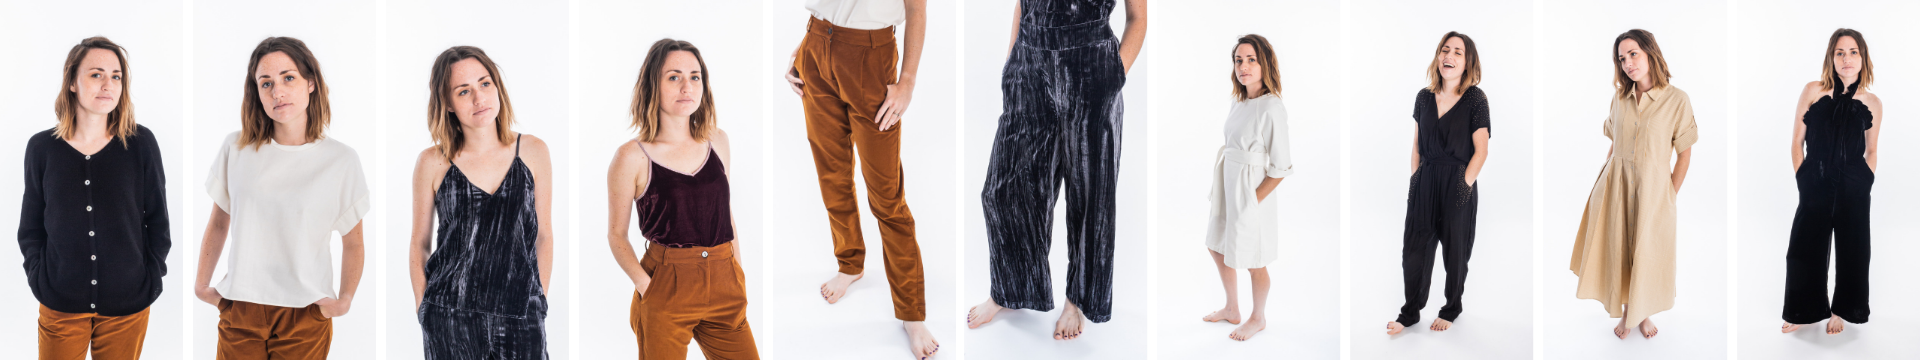 shop ethical clothing items from our Festive Capsule wardrobe, perfect for a minimalist Holiday.